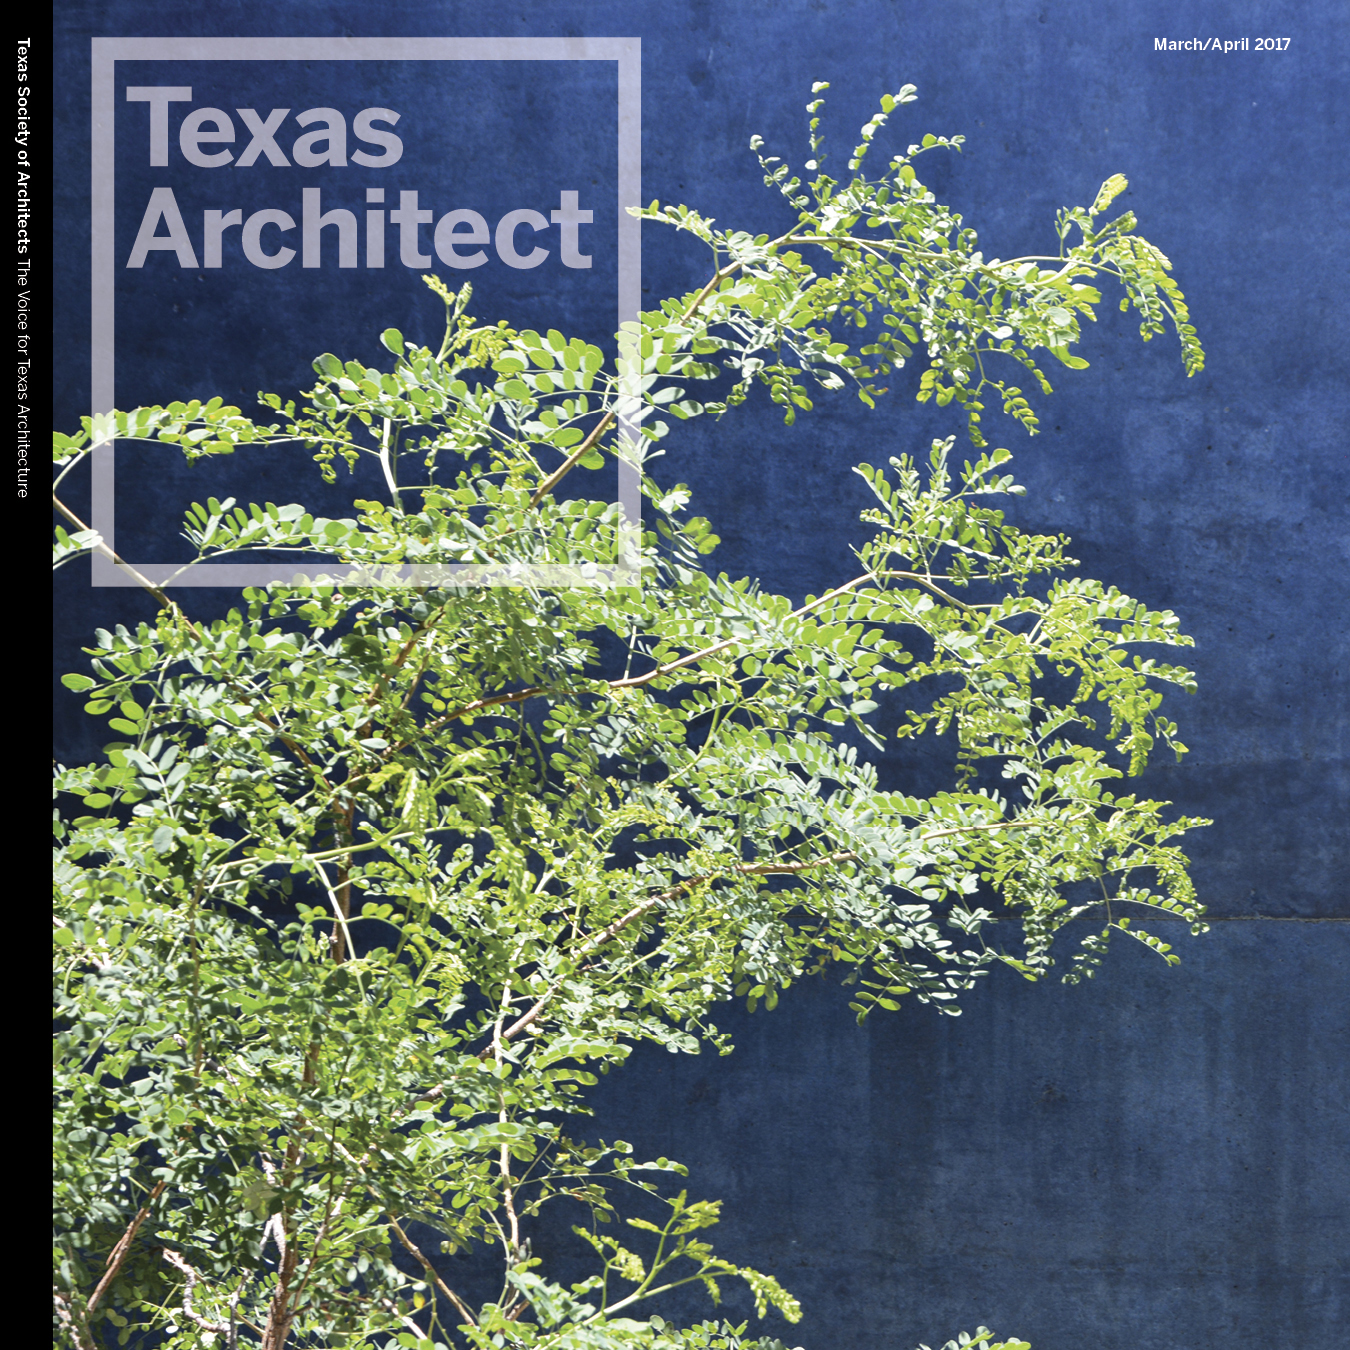 2017-03_Texas Architect_coversquare.jpg